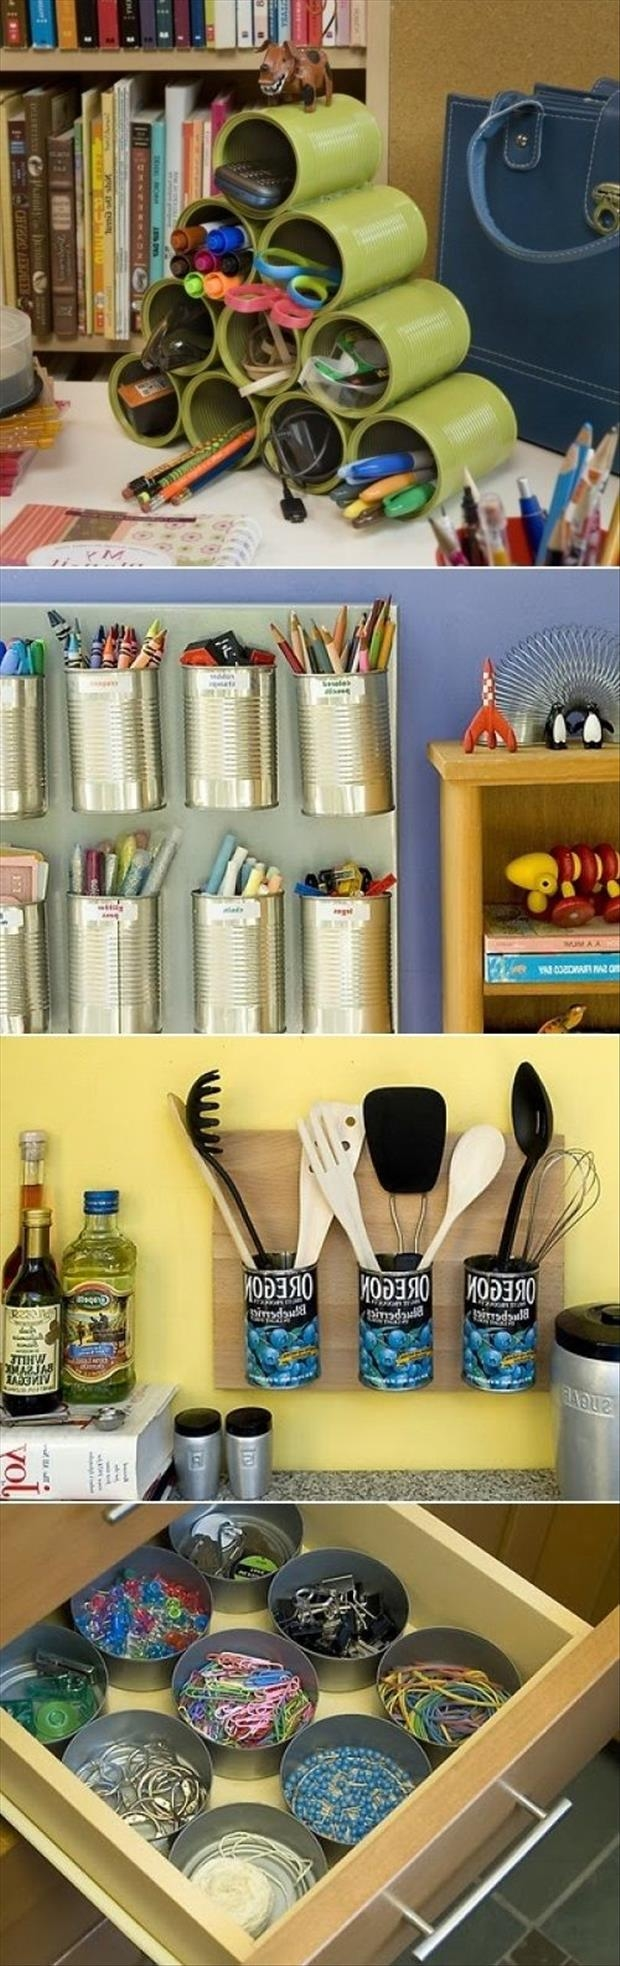 Tin can craft organization pictures photos and images for facebook tumblr pinterest and twitter - Diy tin can ideas ...